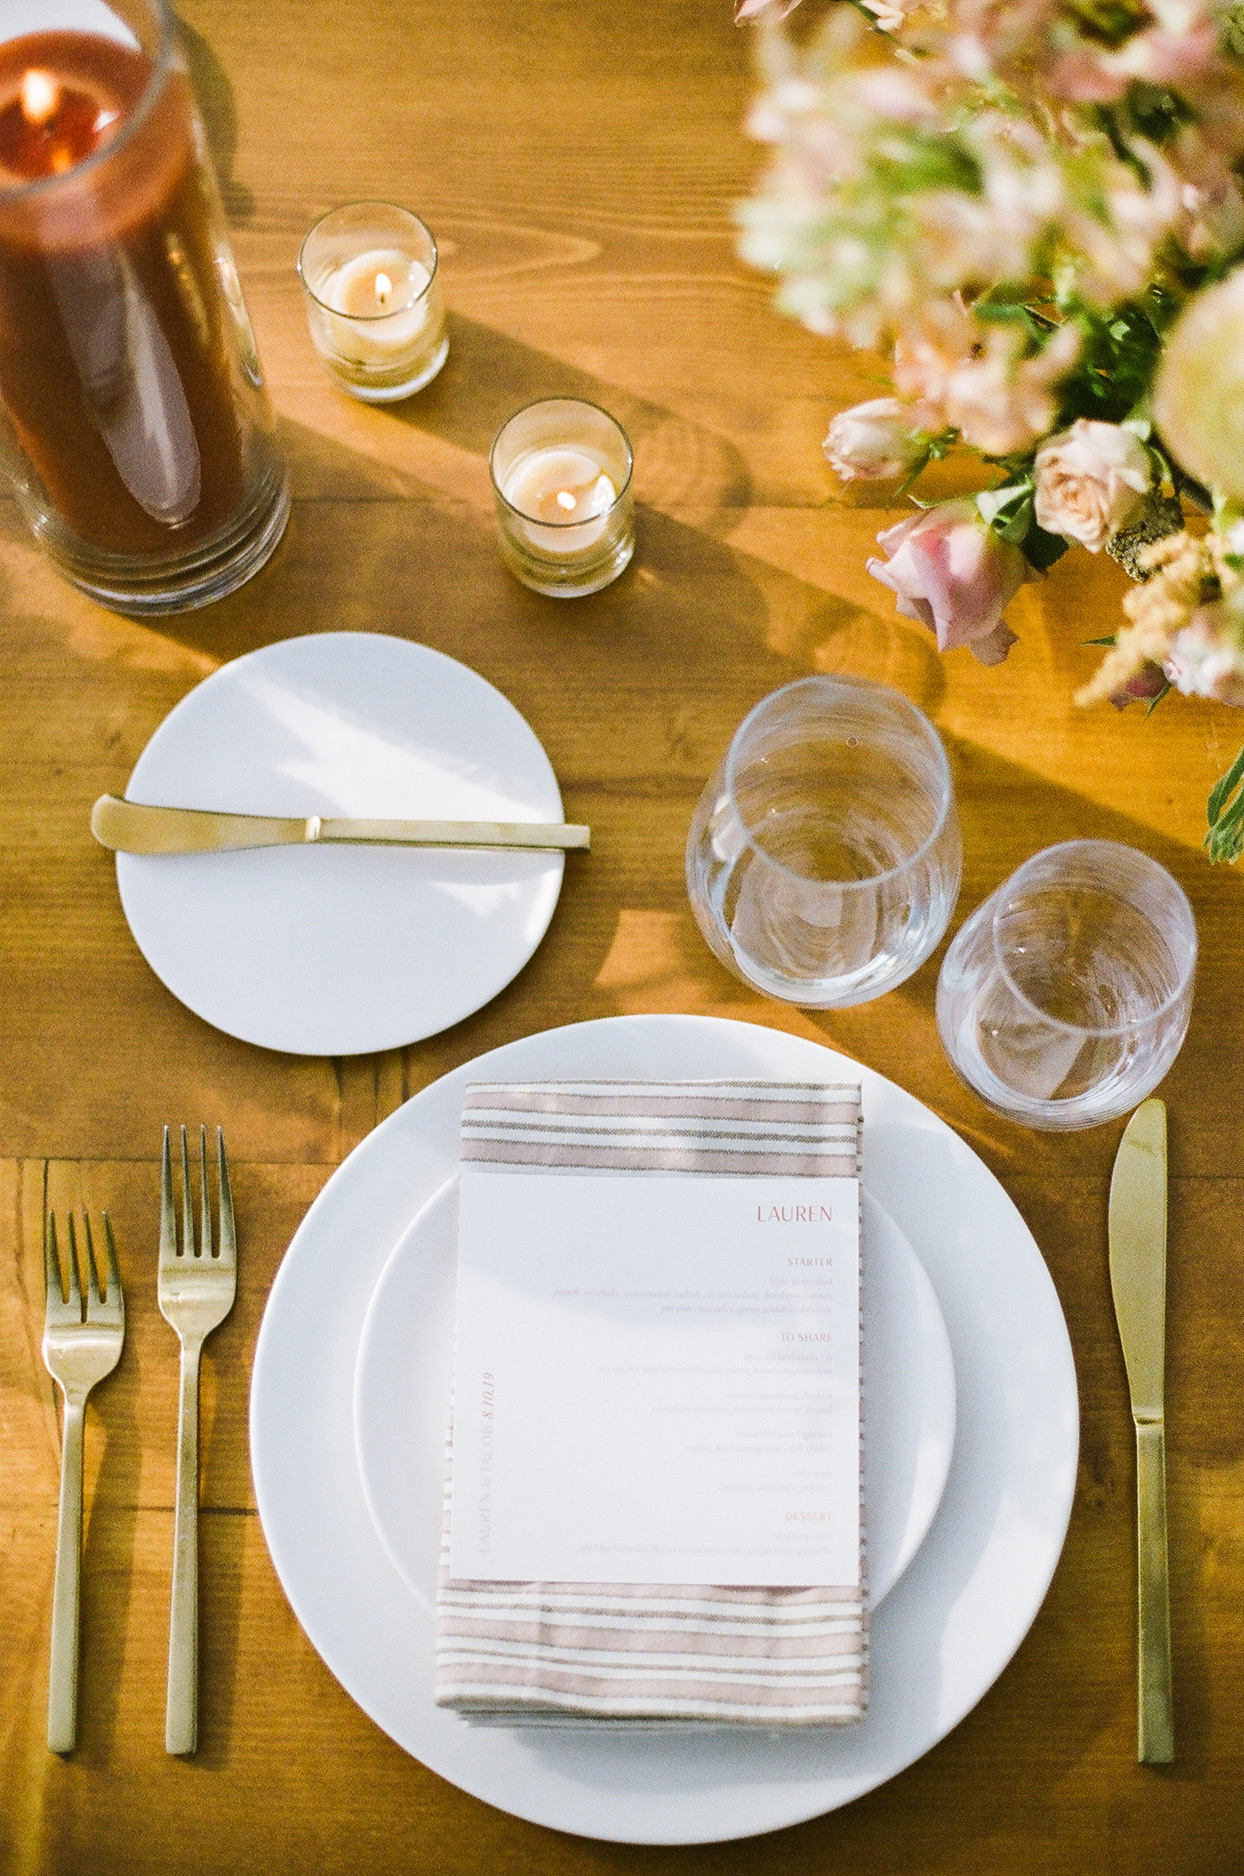 elegant wedding place setting with striped mauve napkins and gold silverware